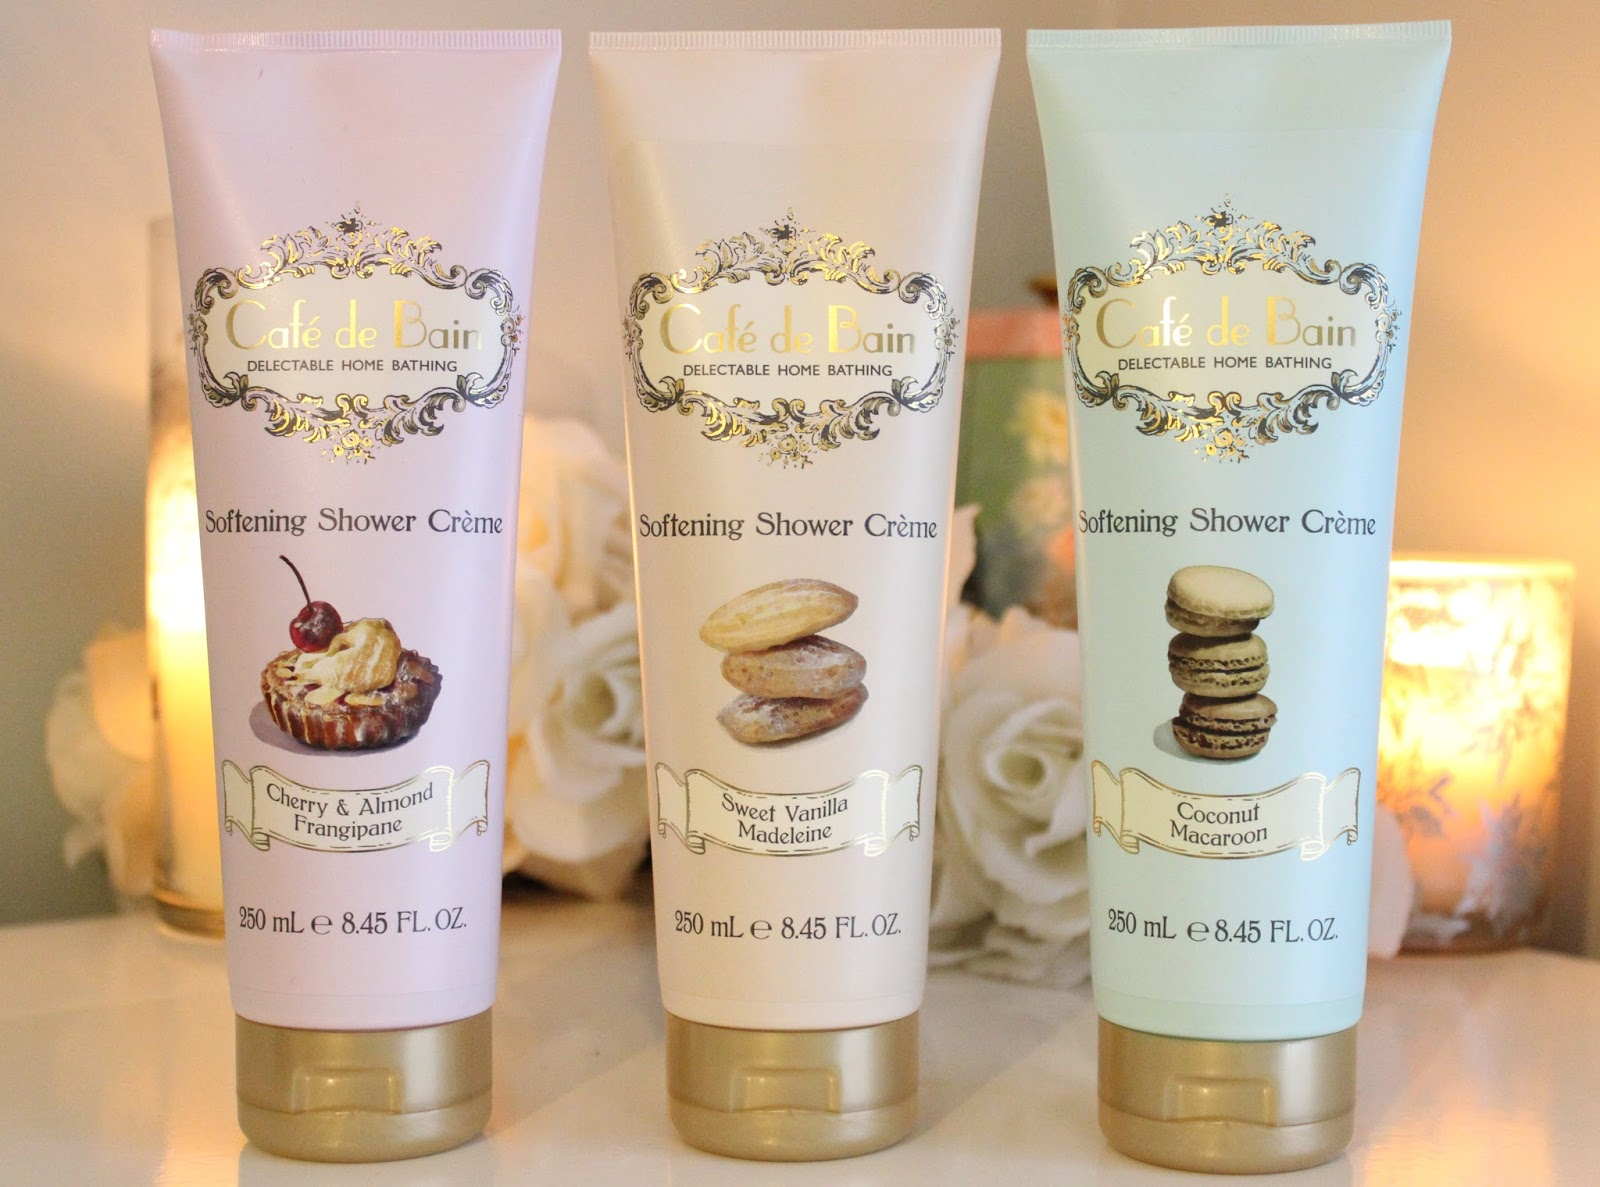 Cafe De Bain Shower Cremes at http://www.maisymeow.com/2015/01/sweet-showers-cafe-de-bain-shower-cremes.html